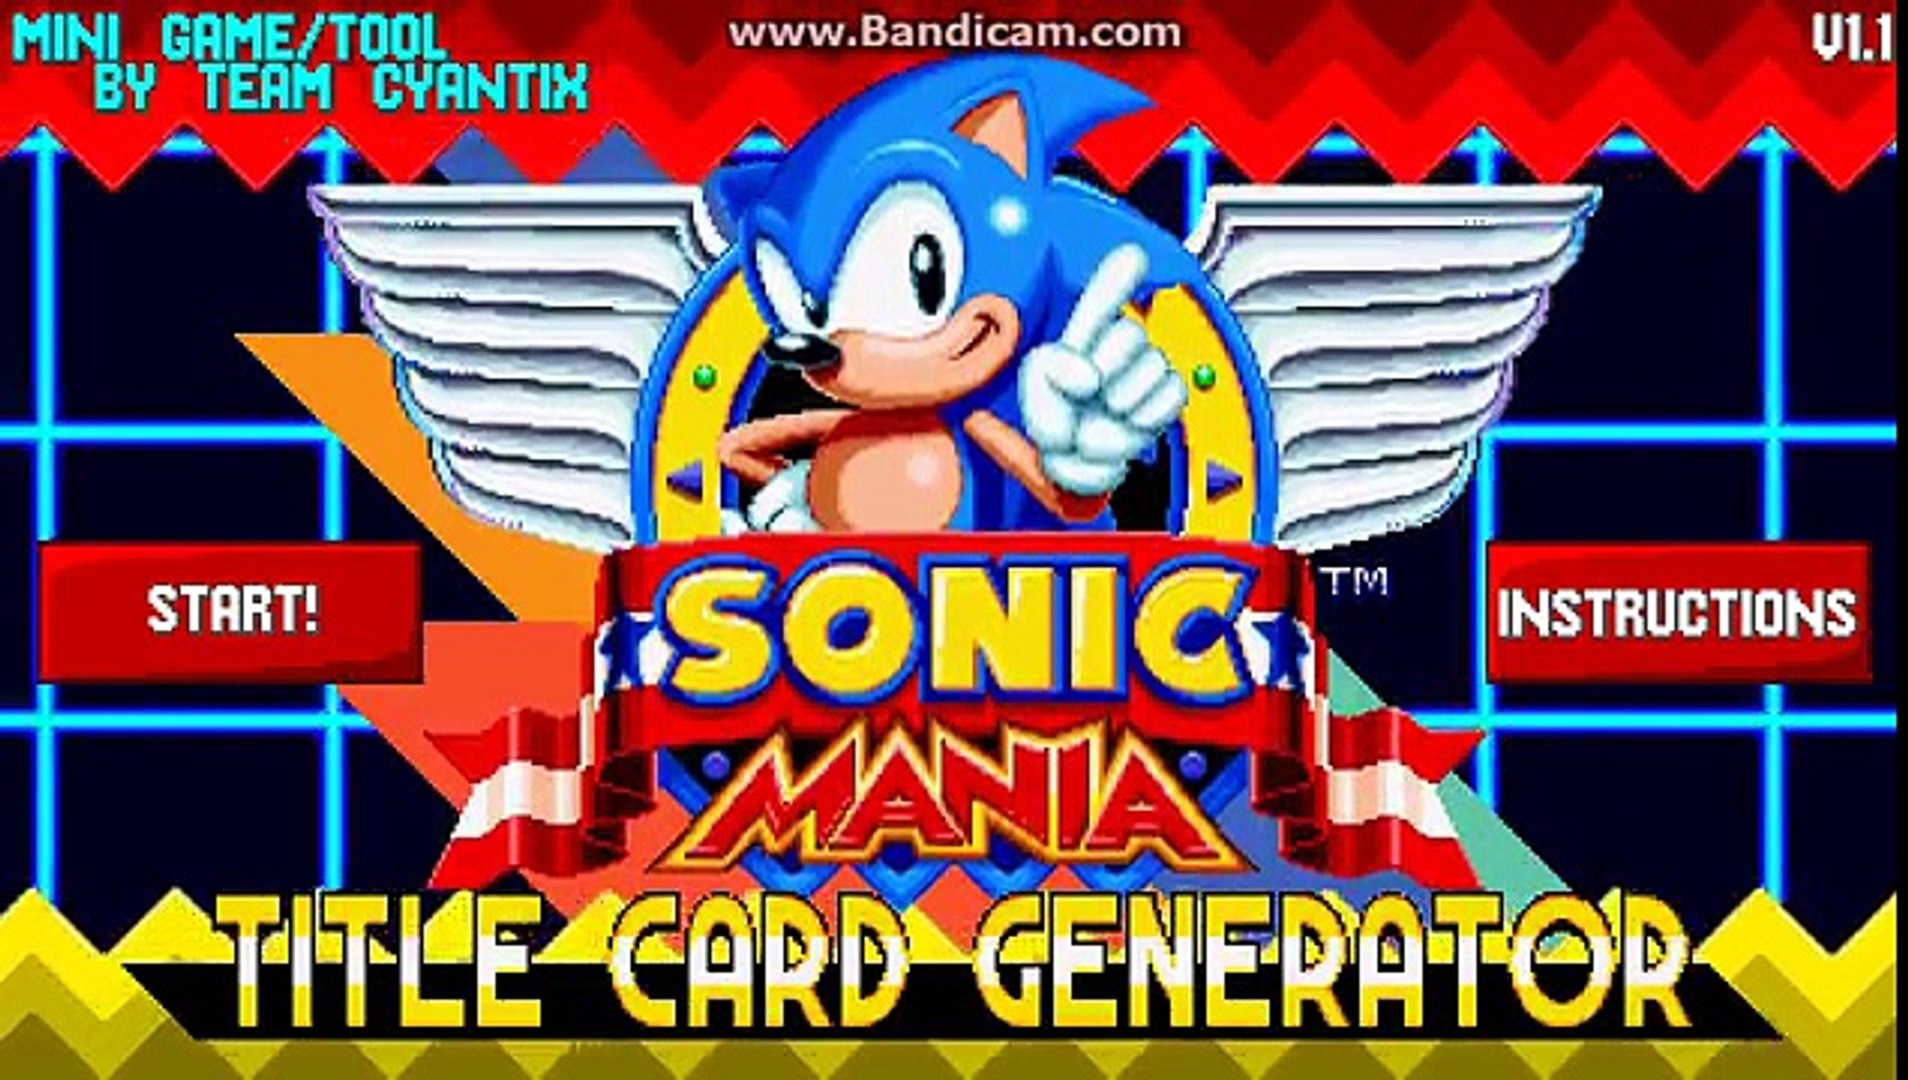 SONIC MANIA TITLE CARD GENERATOR - SONIC EXE EASTER EGG